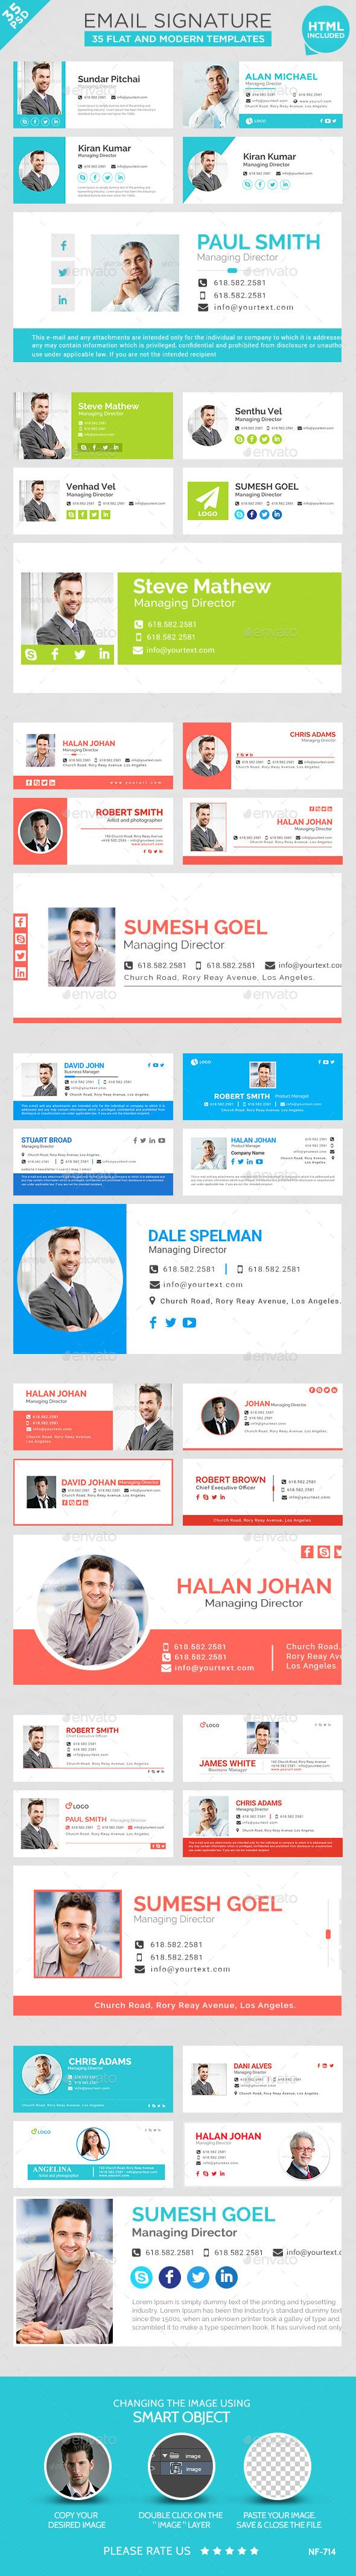 Email Signature - 35 Templates